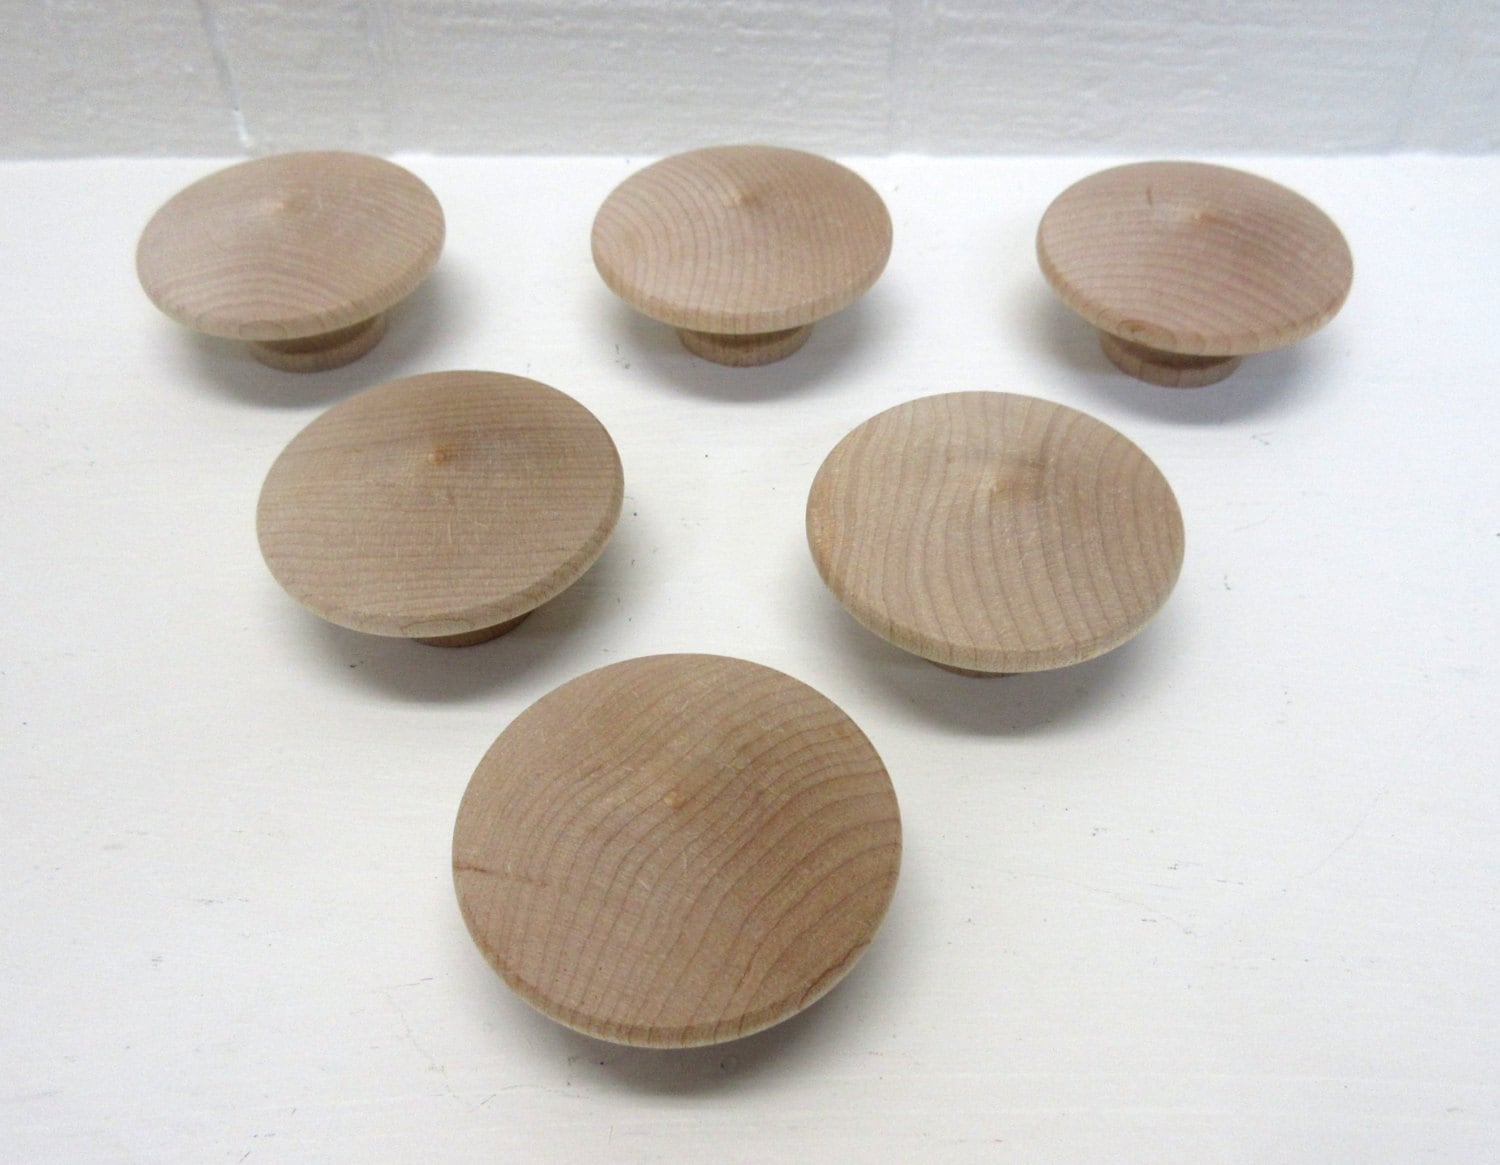 Wood Knobs New And Unfinished 2 Inch Wooden Door Knob